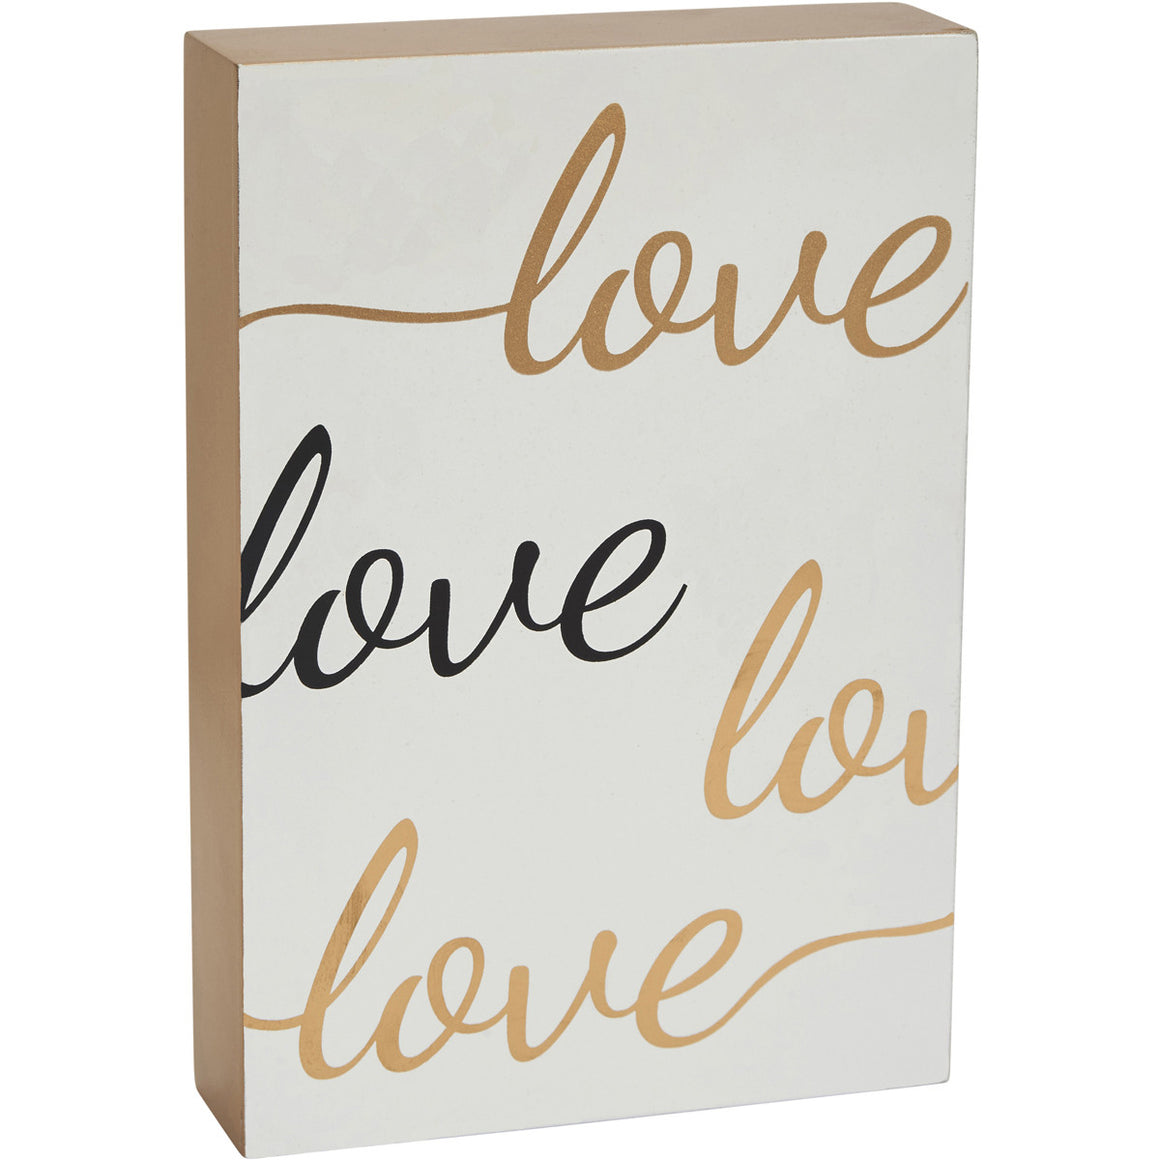 Chloé 'Love Love Love' Sign - The Love Trees